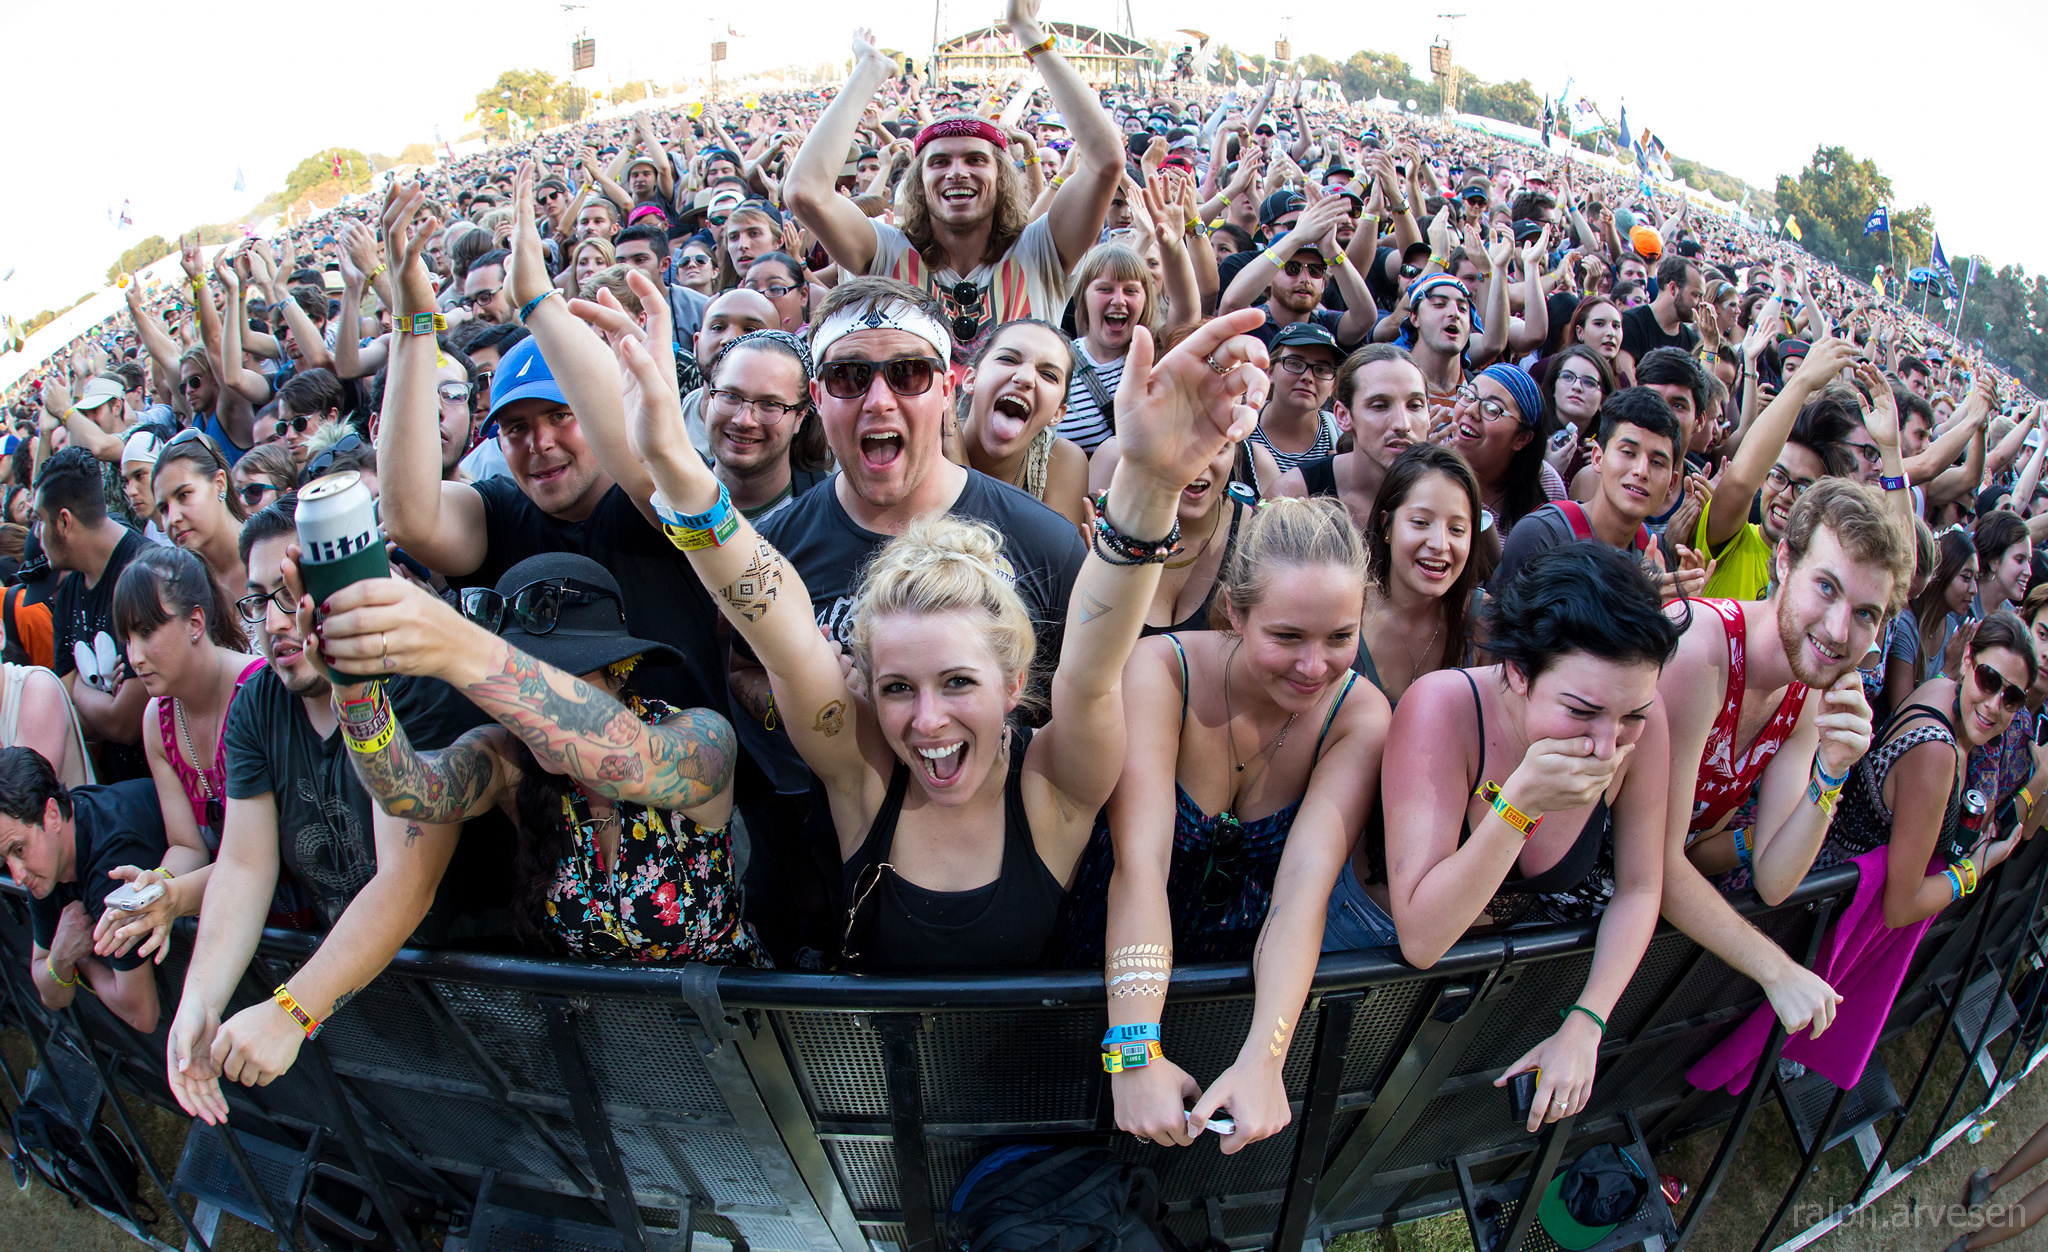 ACL Fest 2015 crowd. Photo by Flickr user Ralph Arvesen, creative commons licensed. https://www.flickr.com/photos/rarvesen/21681493794